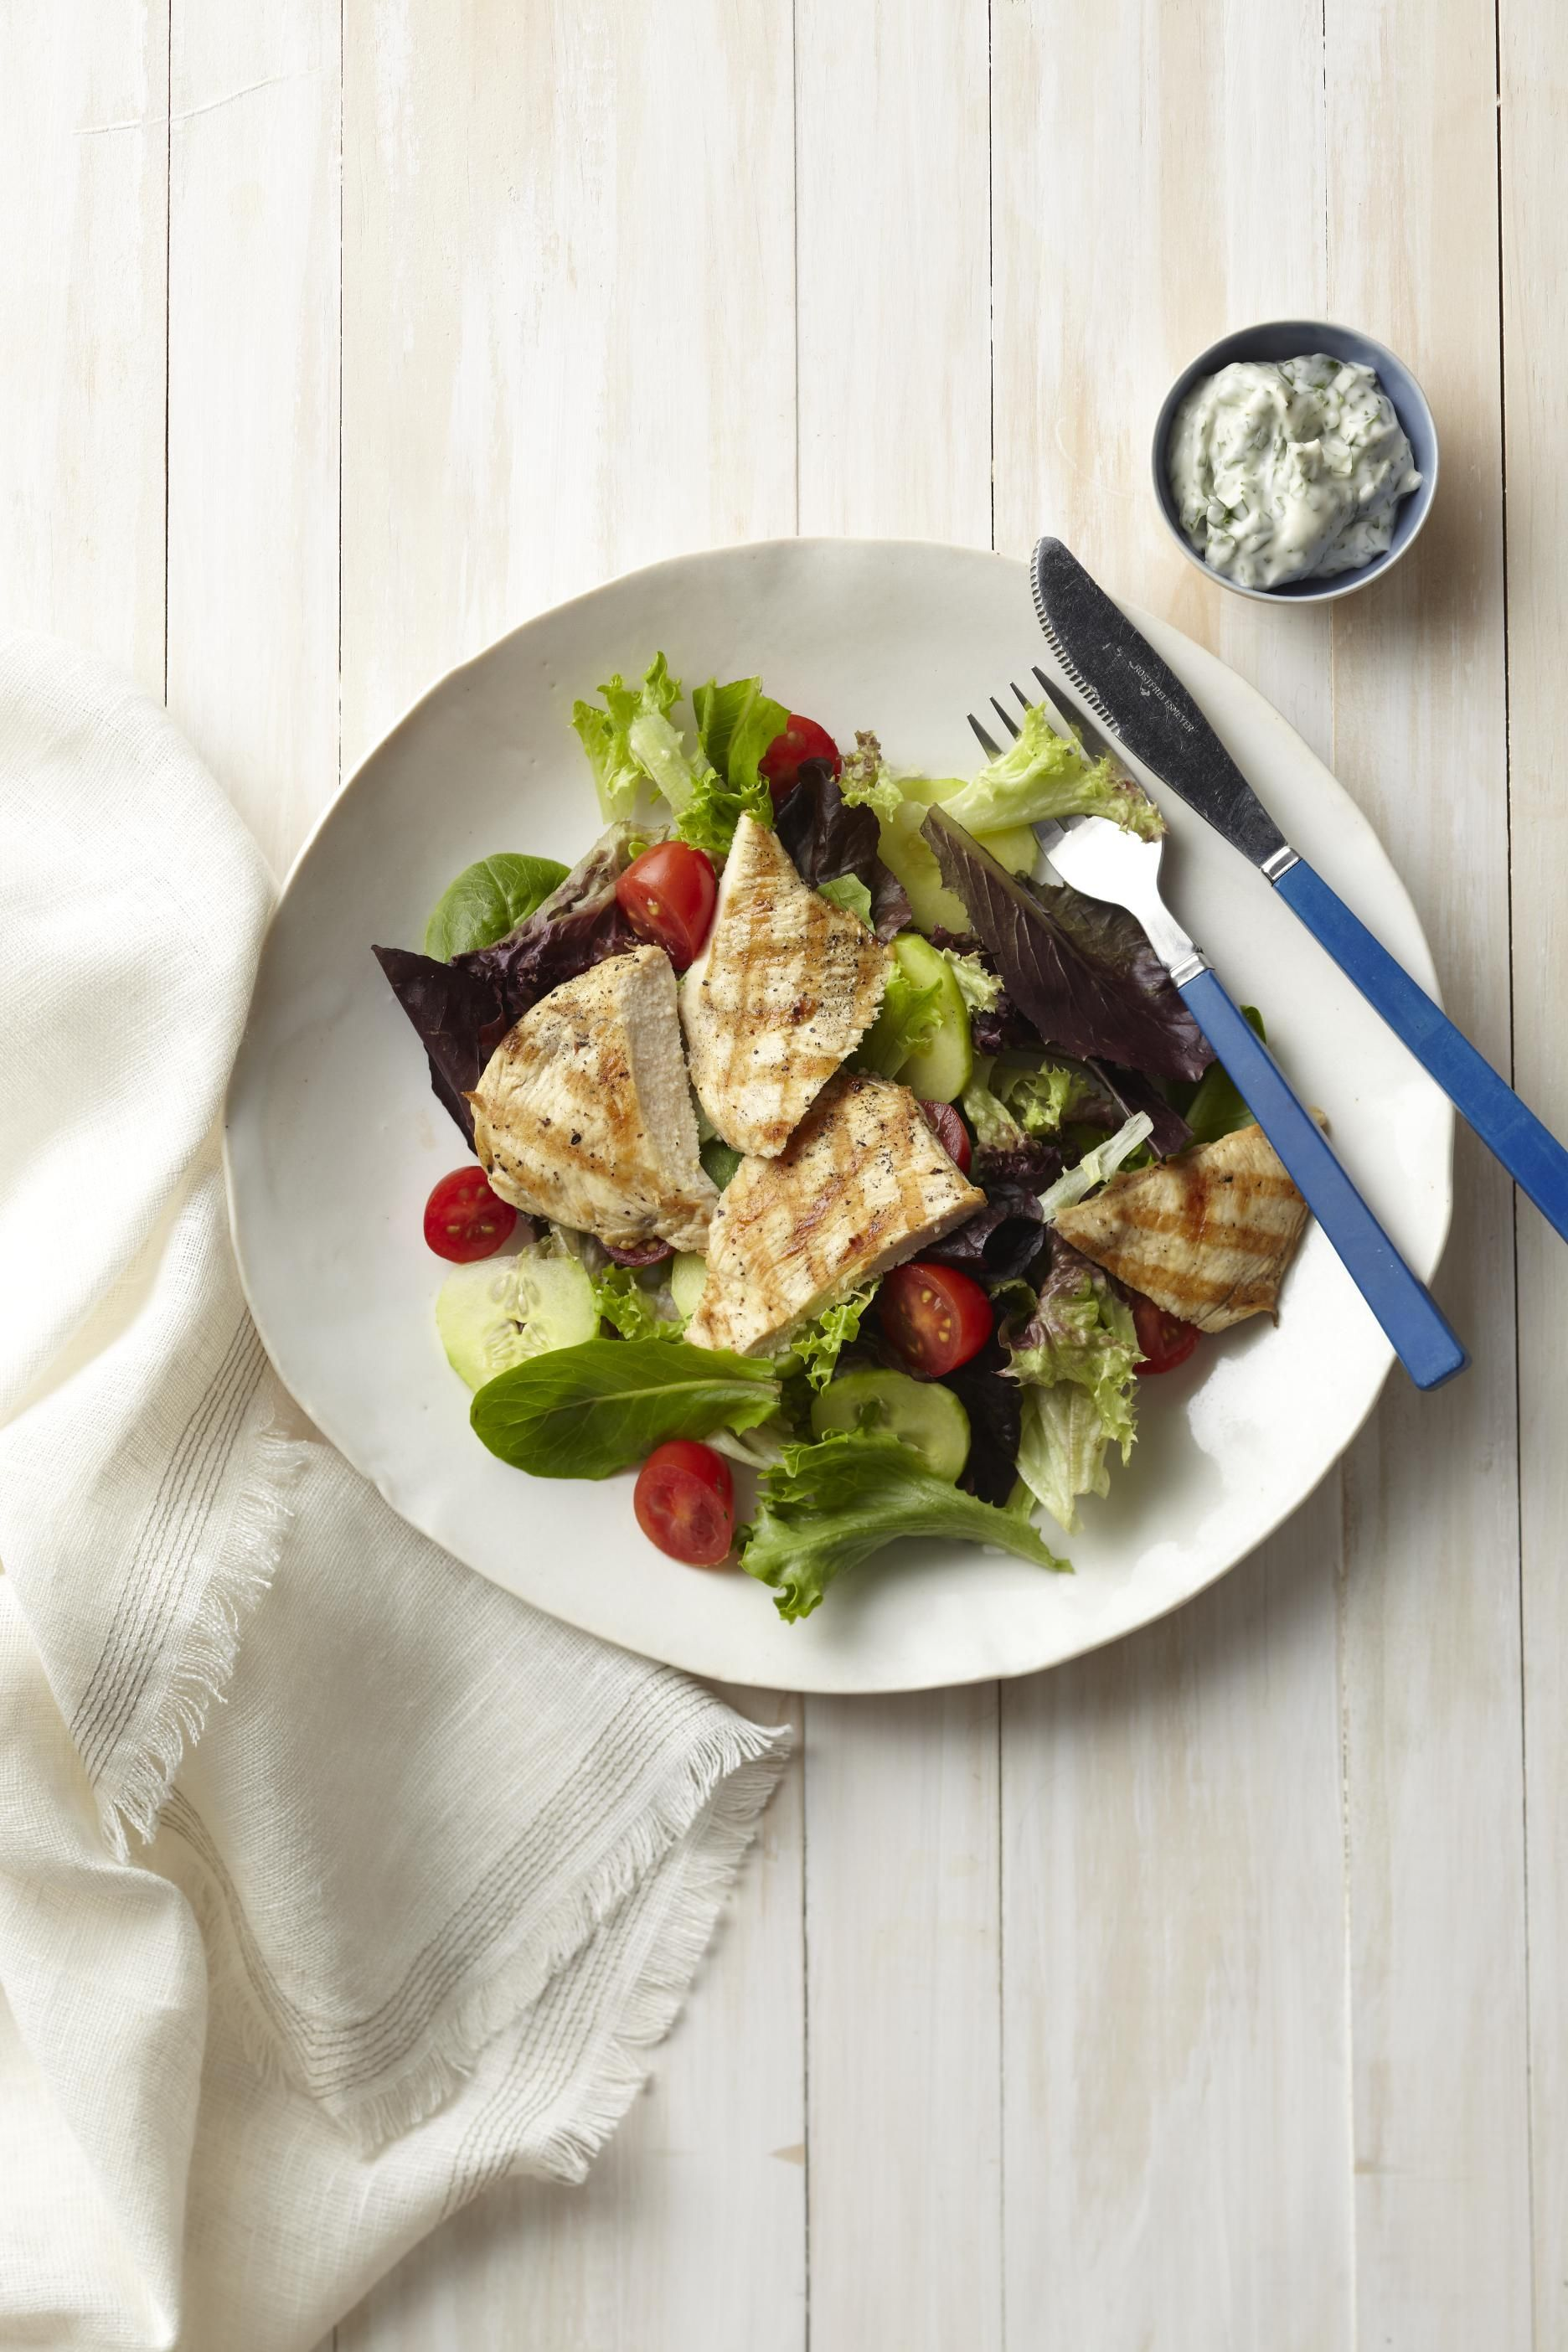 Grilled Chicken Cutlet with Basil-Tarragon Aioli #myplate #salad